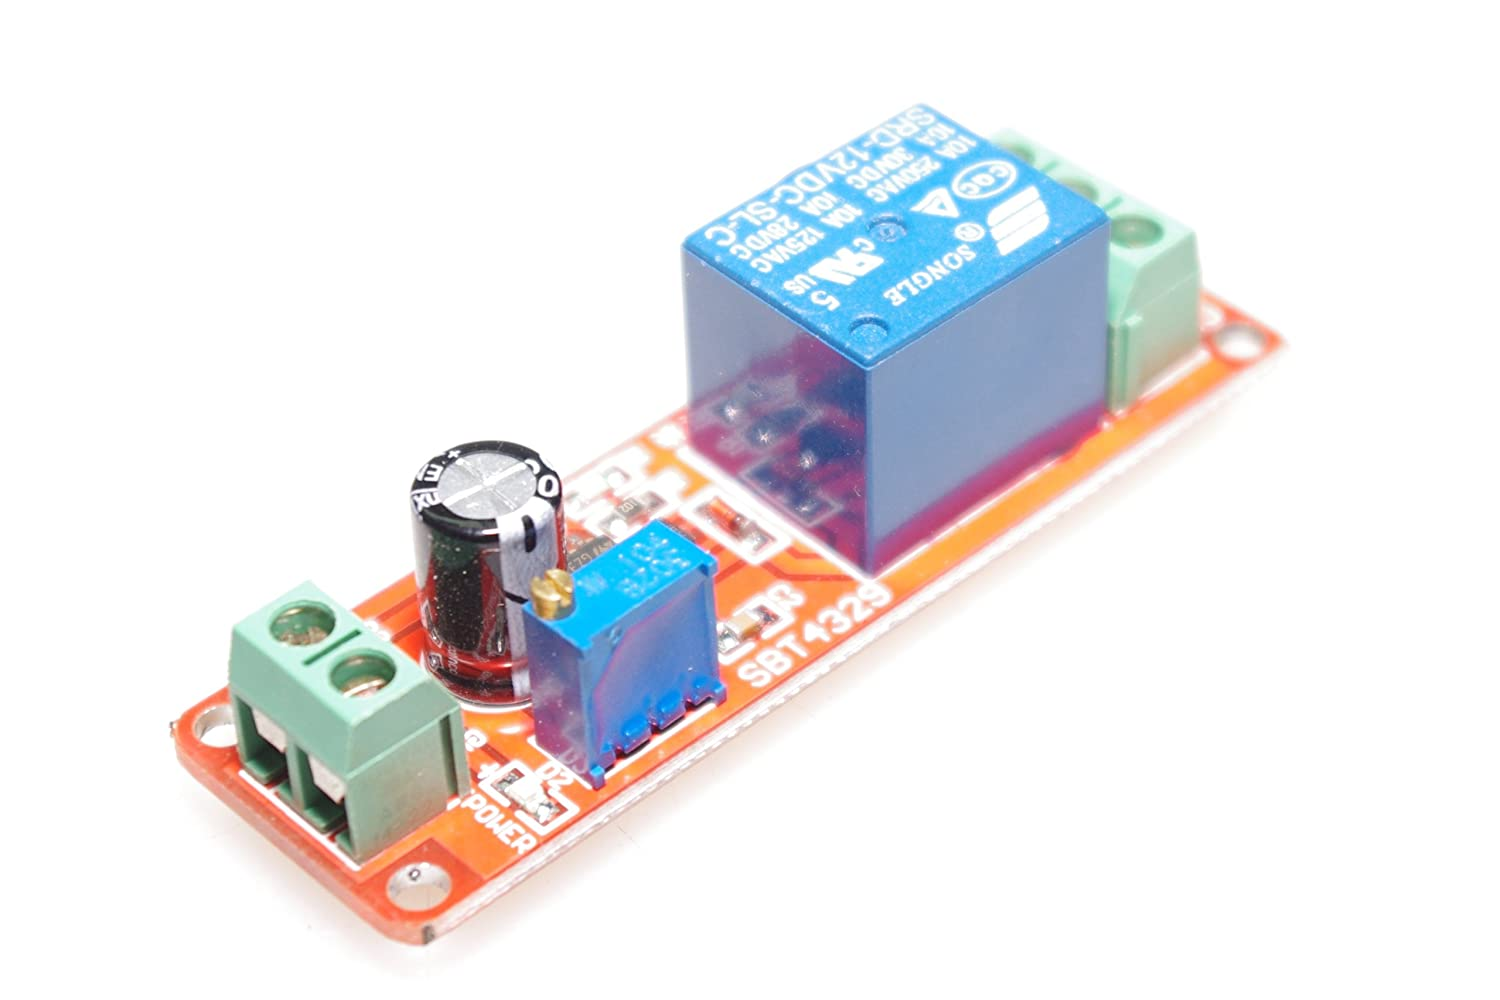 Smakn Dc 12v Delay Timer Switch Adjustable Module 0 To Control My Motor Speed Electrical Engineering Stack Exchange 10 Second Ne555 New Home Audio Theater